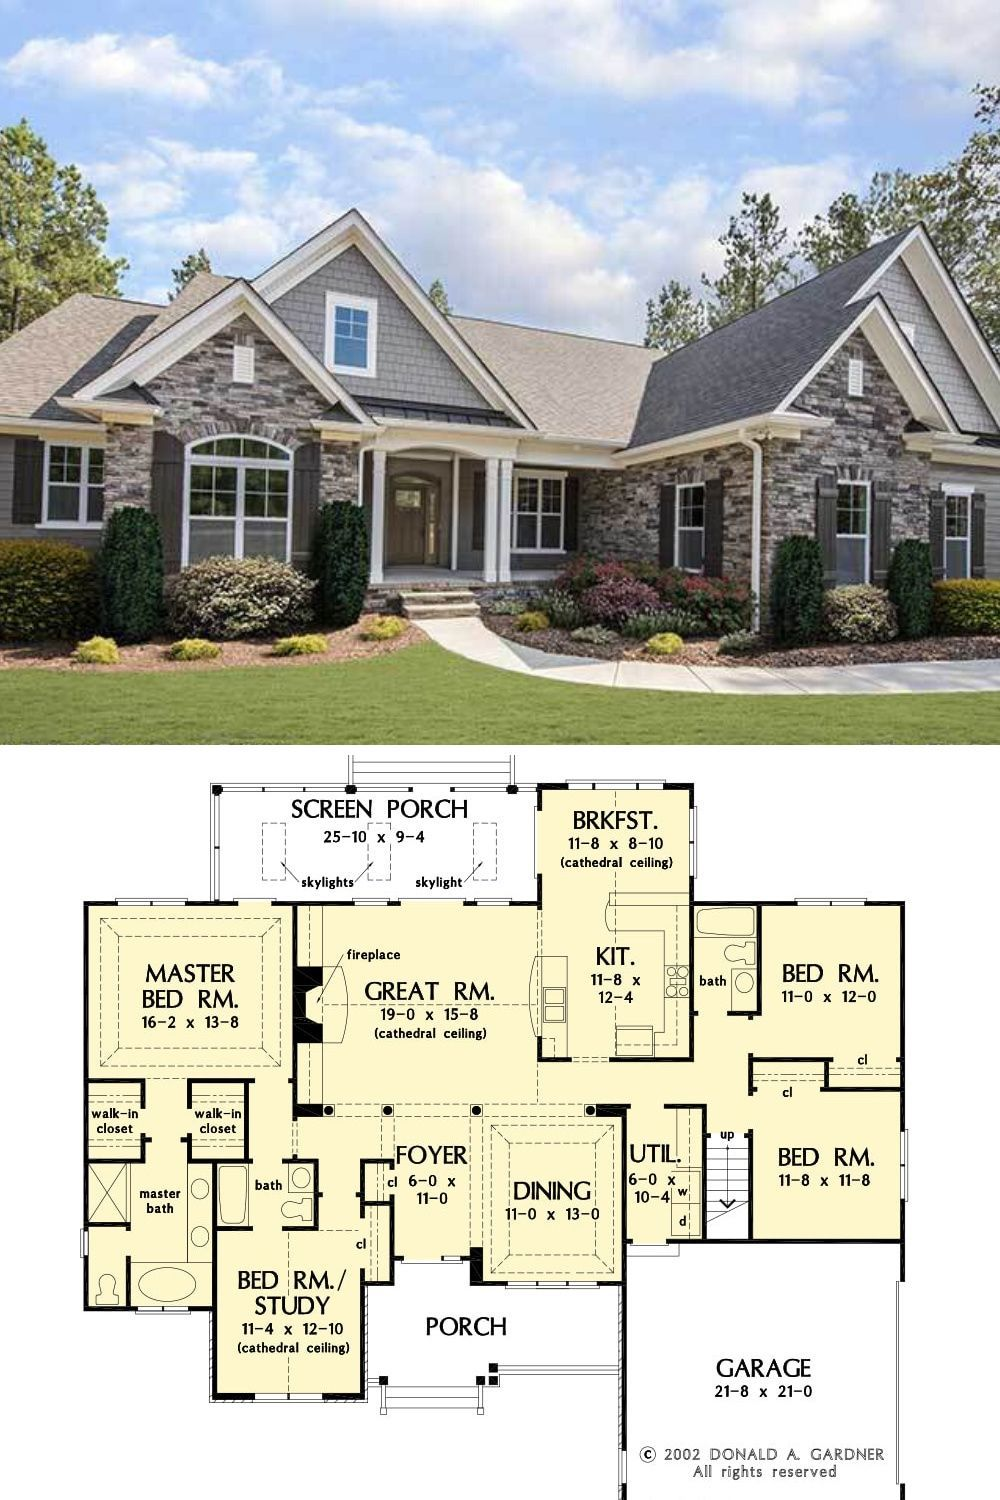 Single Story Traditional 3 Bedroom The Satchwell Home Floor Plan In 2020 New House Plans Beautiful House Plans Craftsman Style House Plans